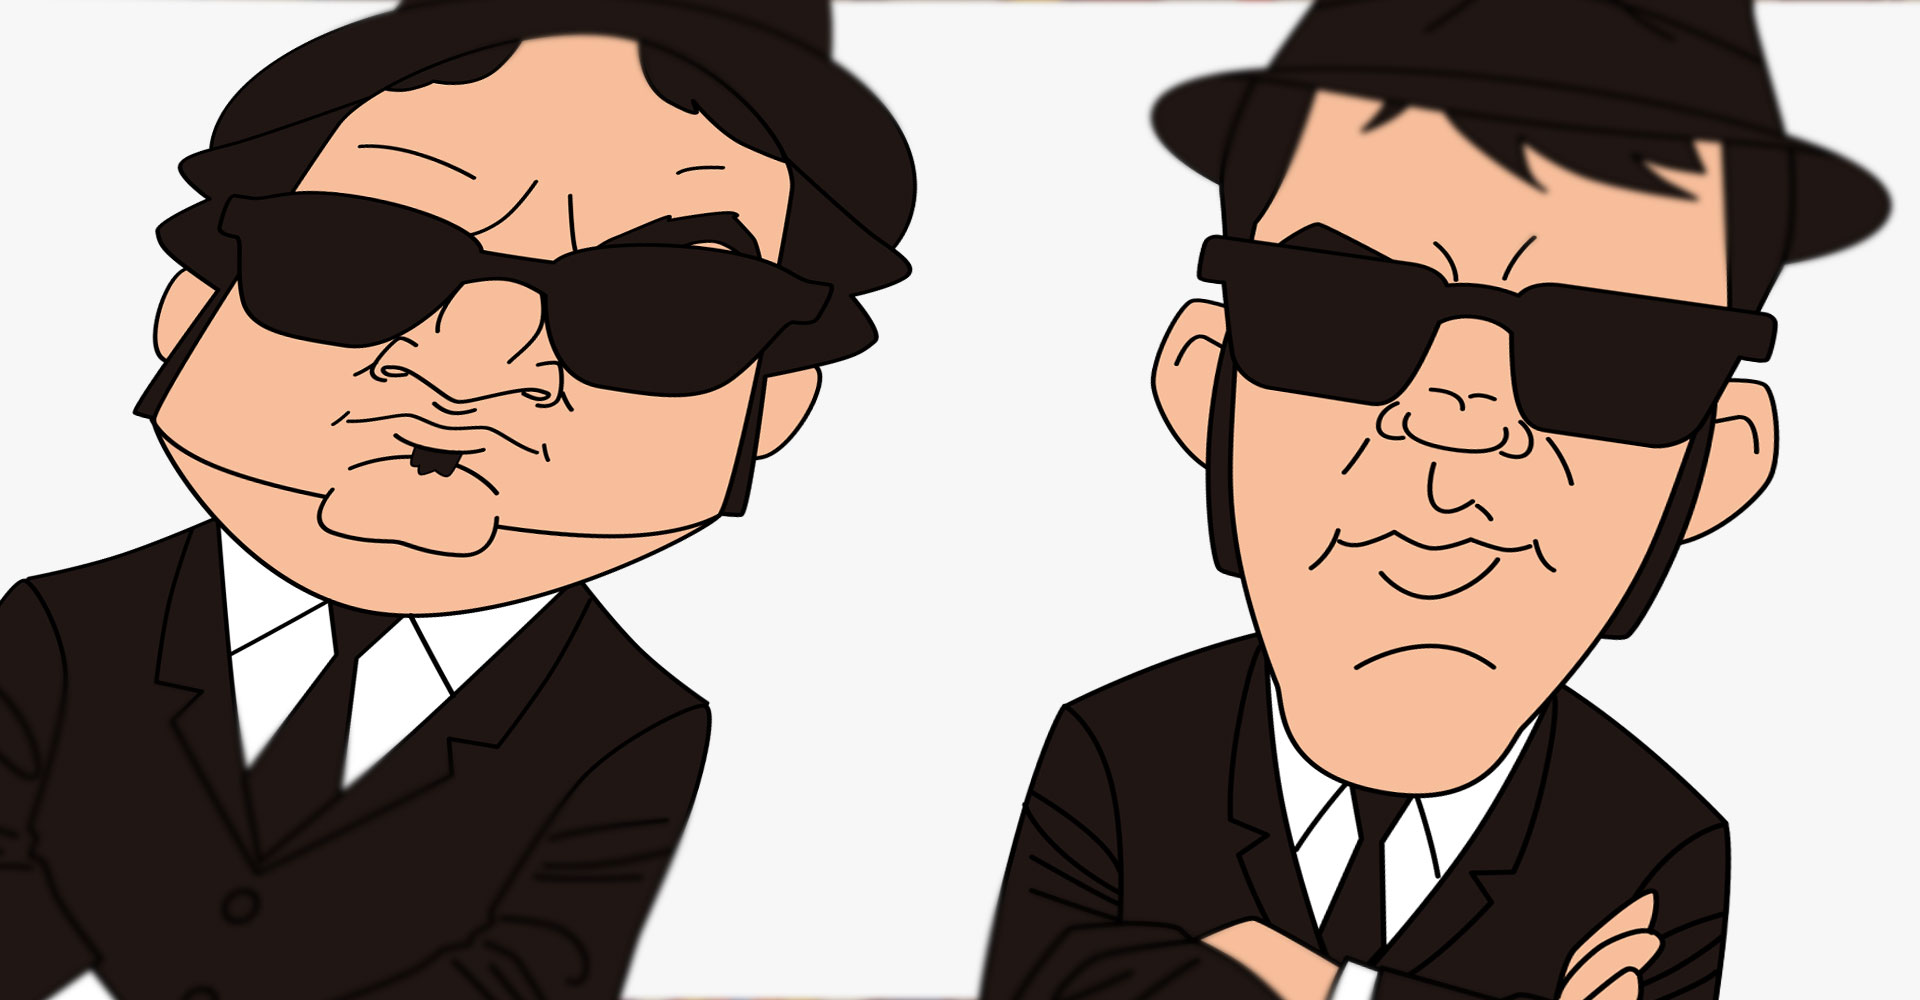 Blues Brothers - stressdoll